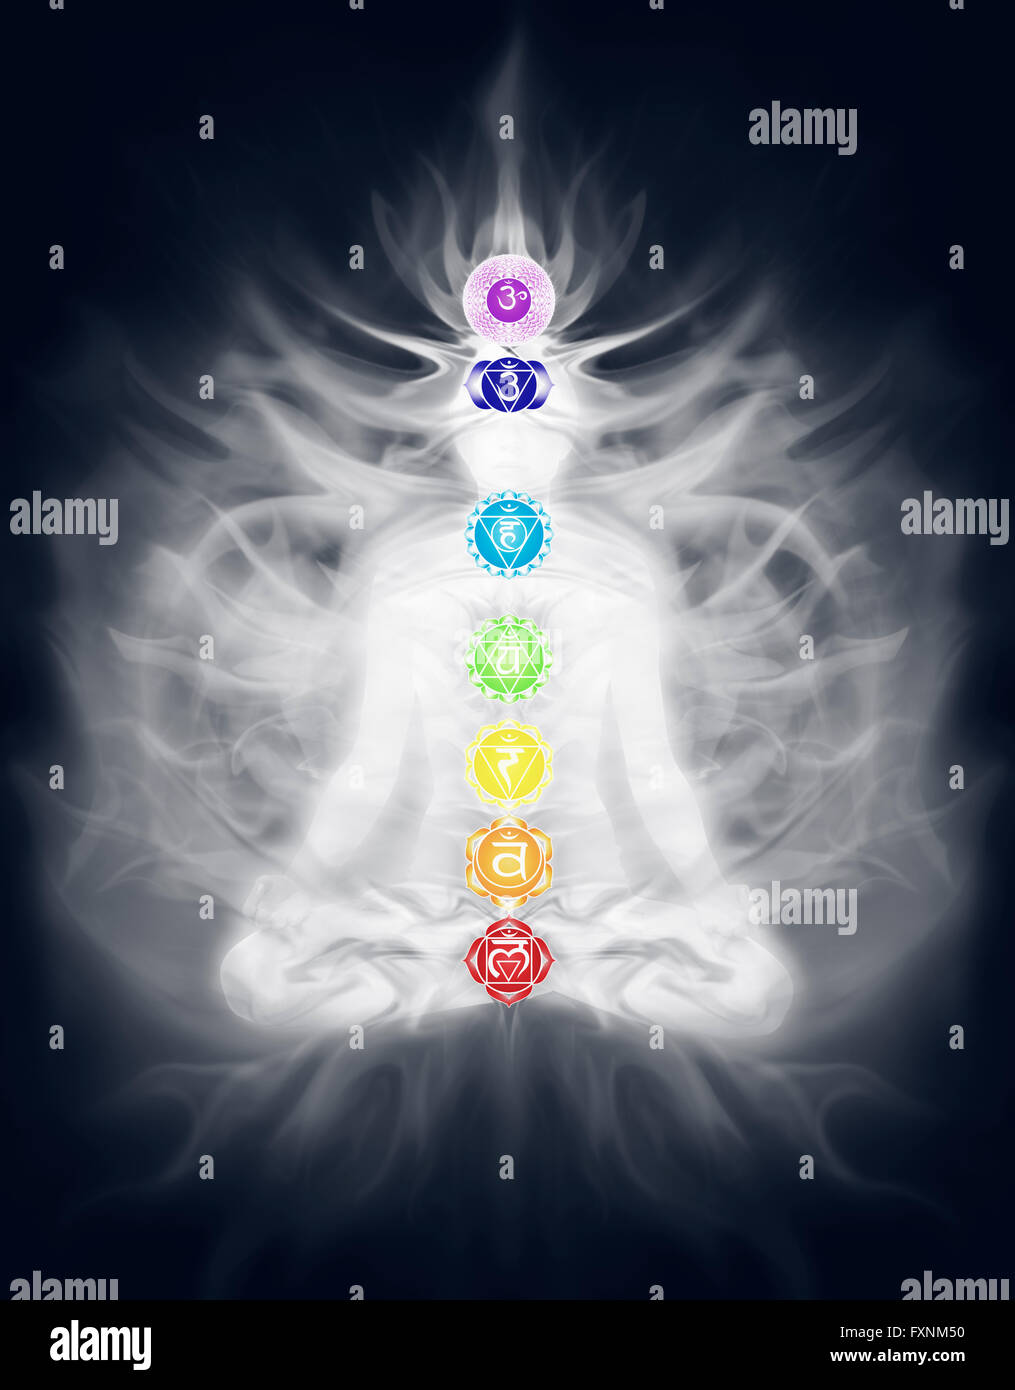 Woman in lotus pose with seven chakra symbols and energy emanating from her body, illustration - Stock Image